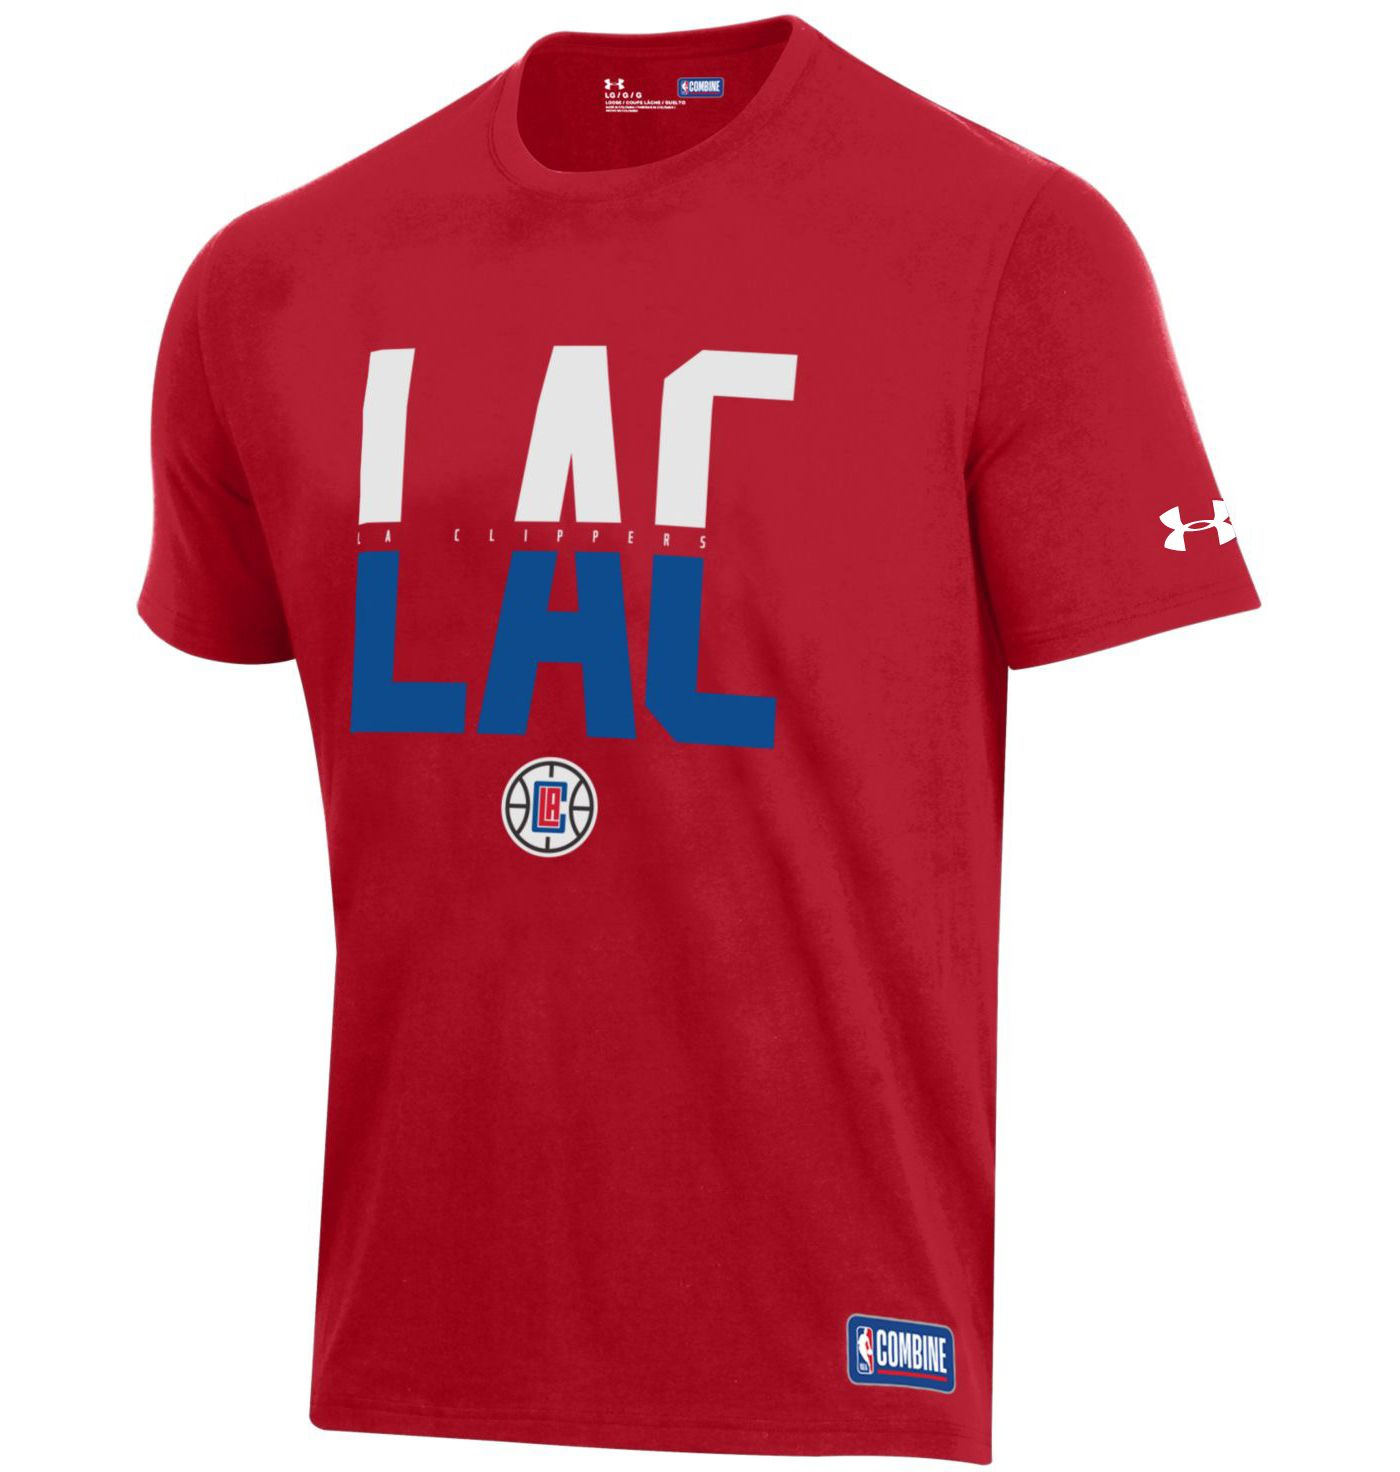 Under Armour Men's Los Angeles Clippers Performance T-Shirt